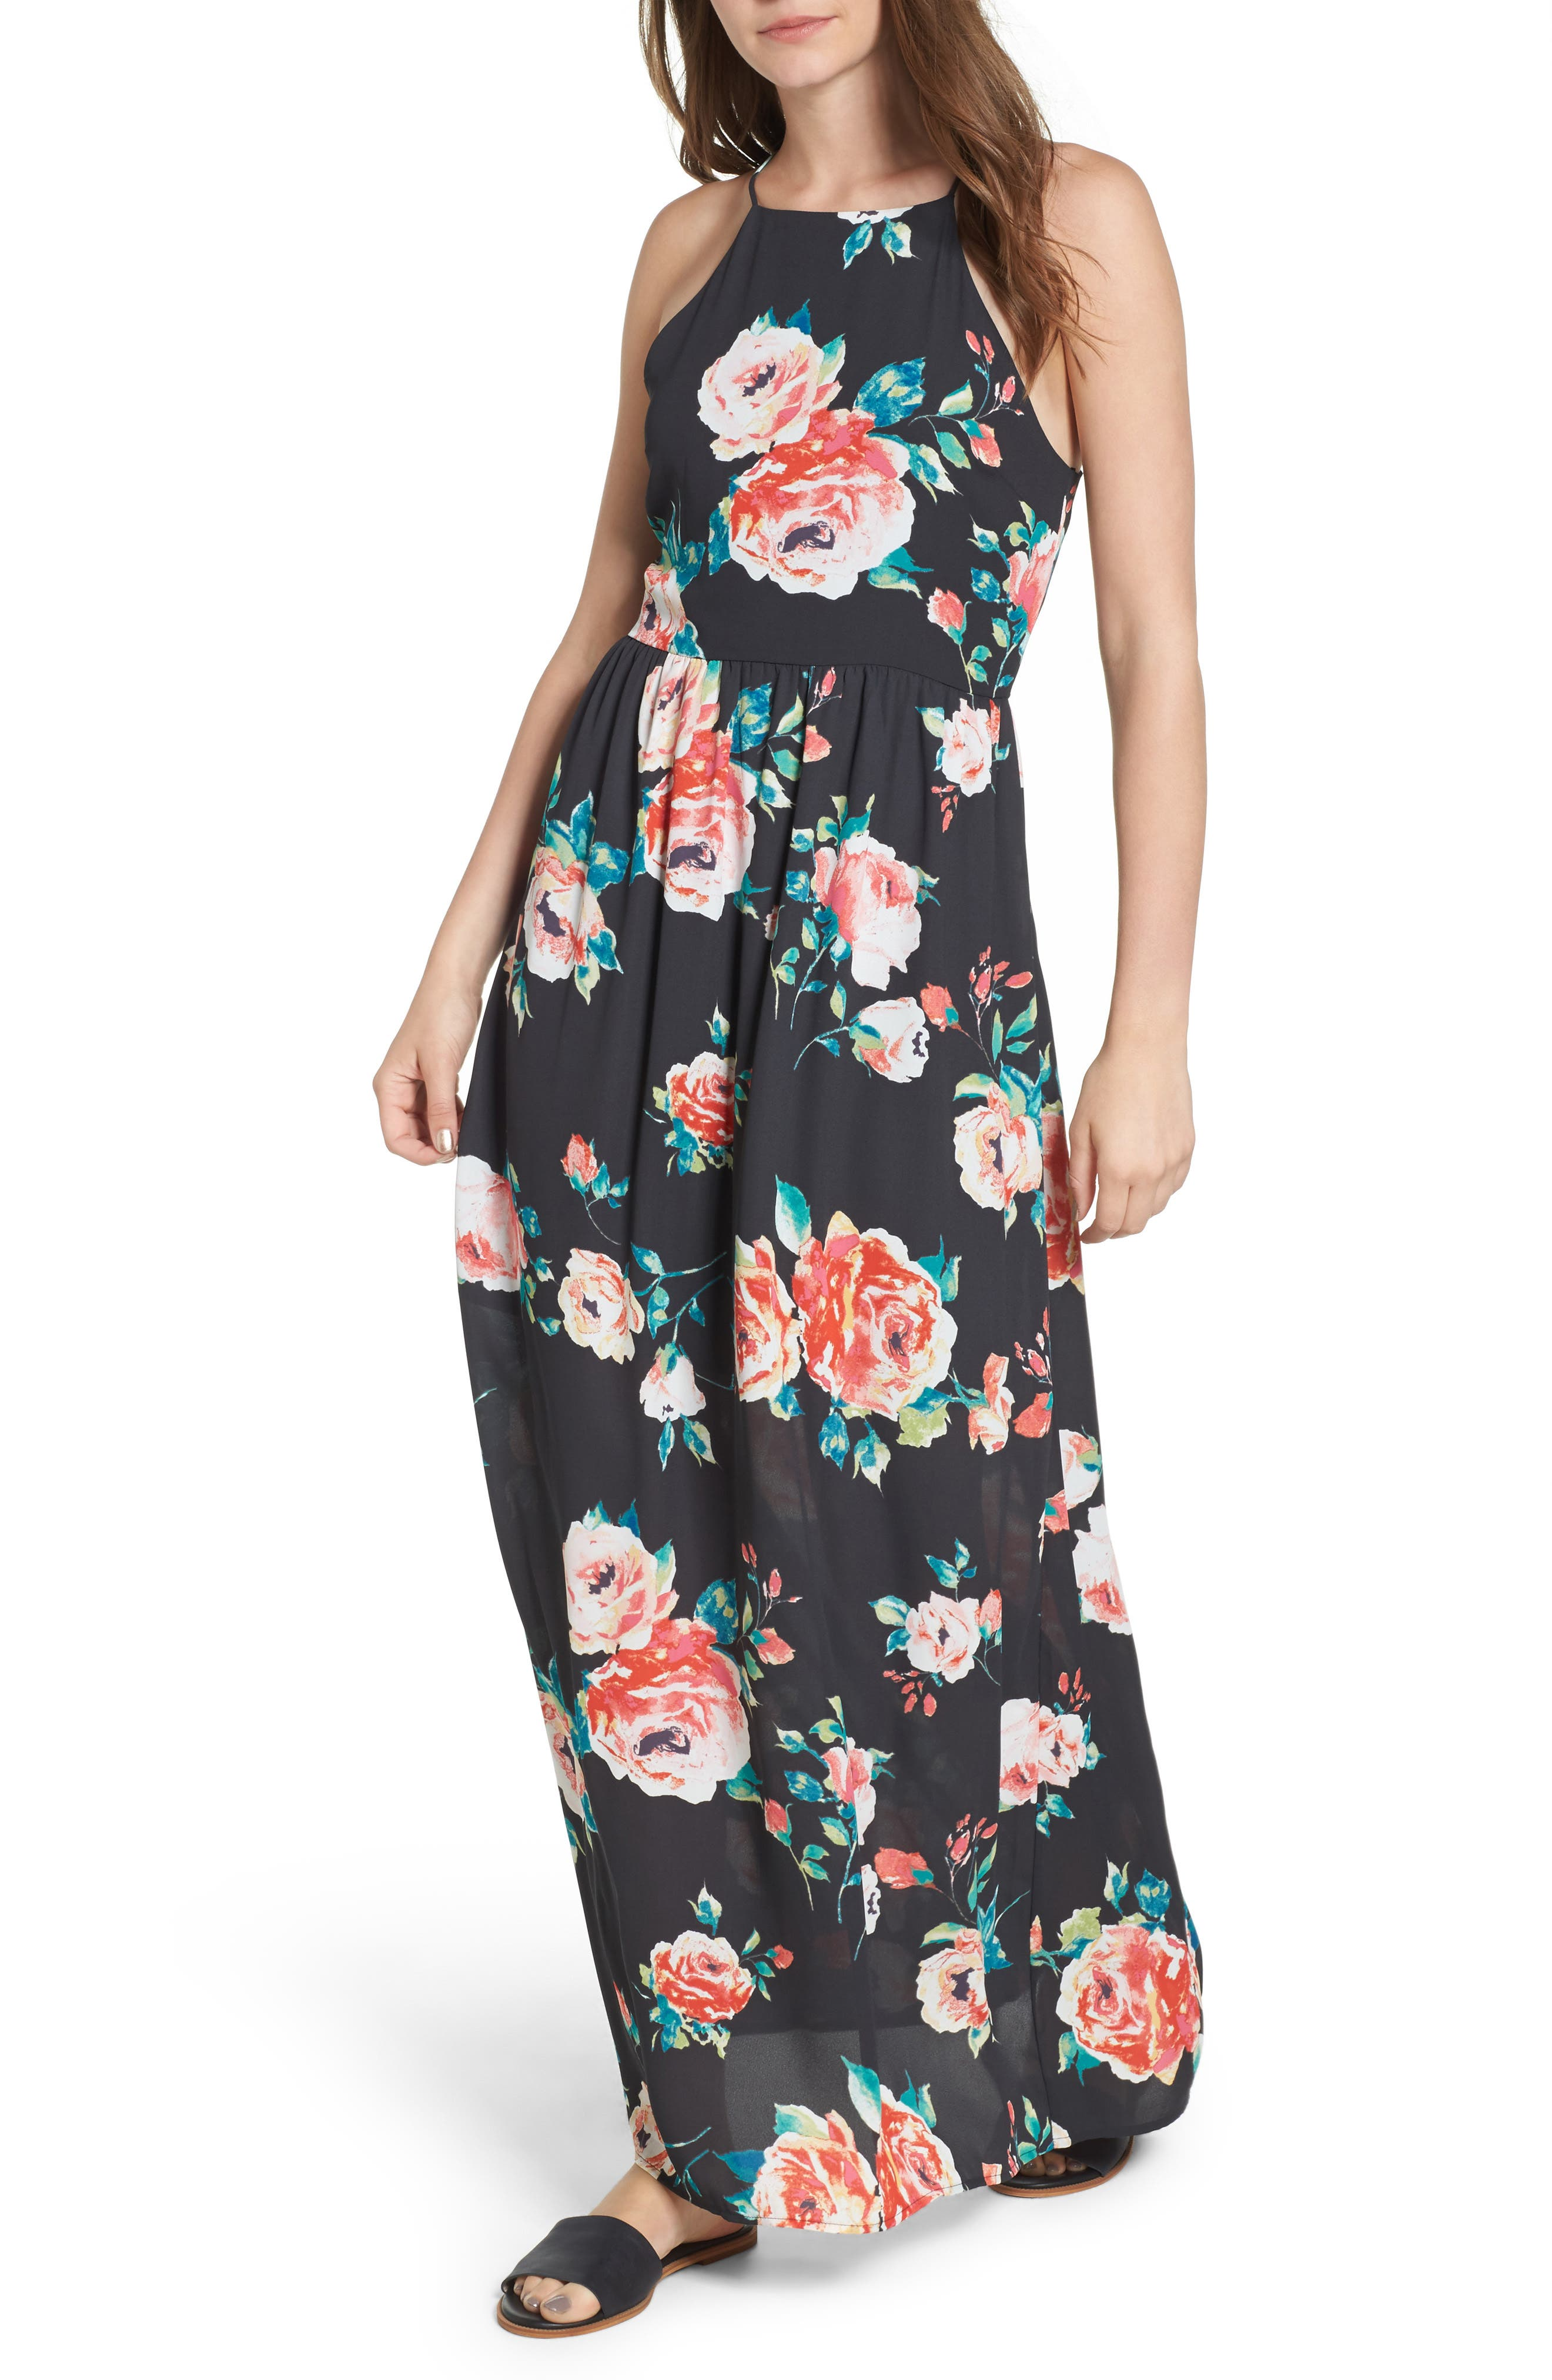 Everly Floral High Neck Maxi Dress